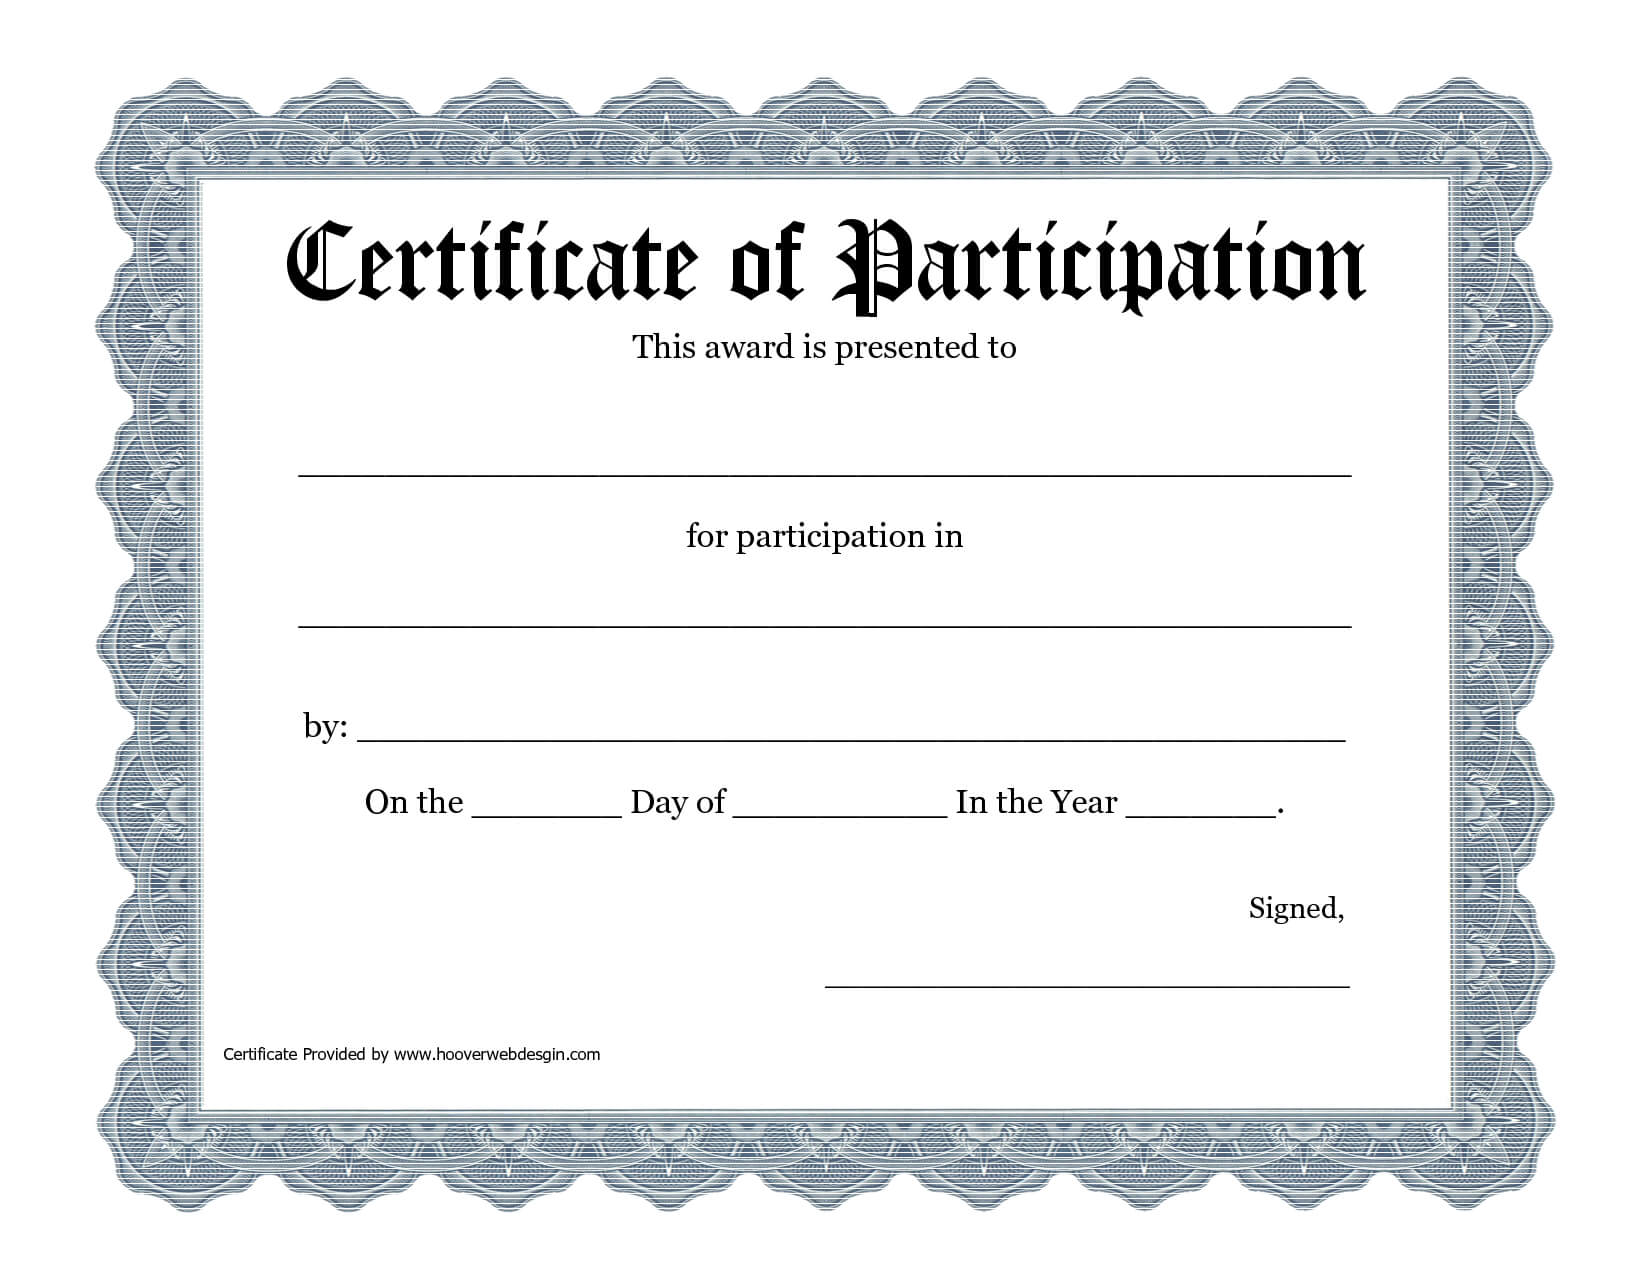 Free Printable Award Certificate Template - Bing Images intended for Free Funny Award Certificate Templates For Word